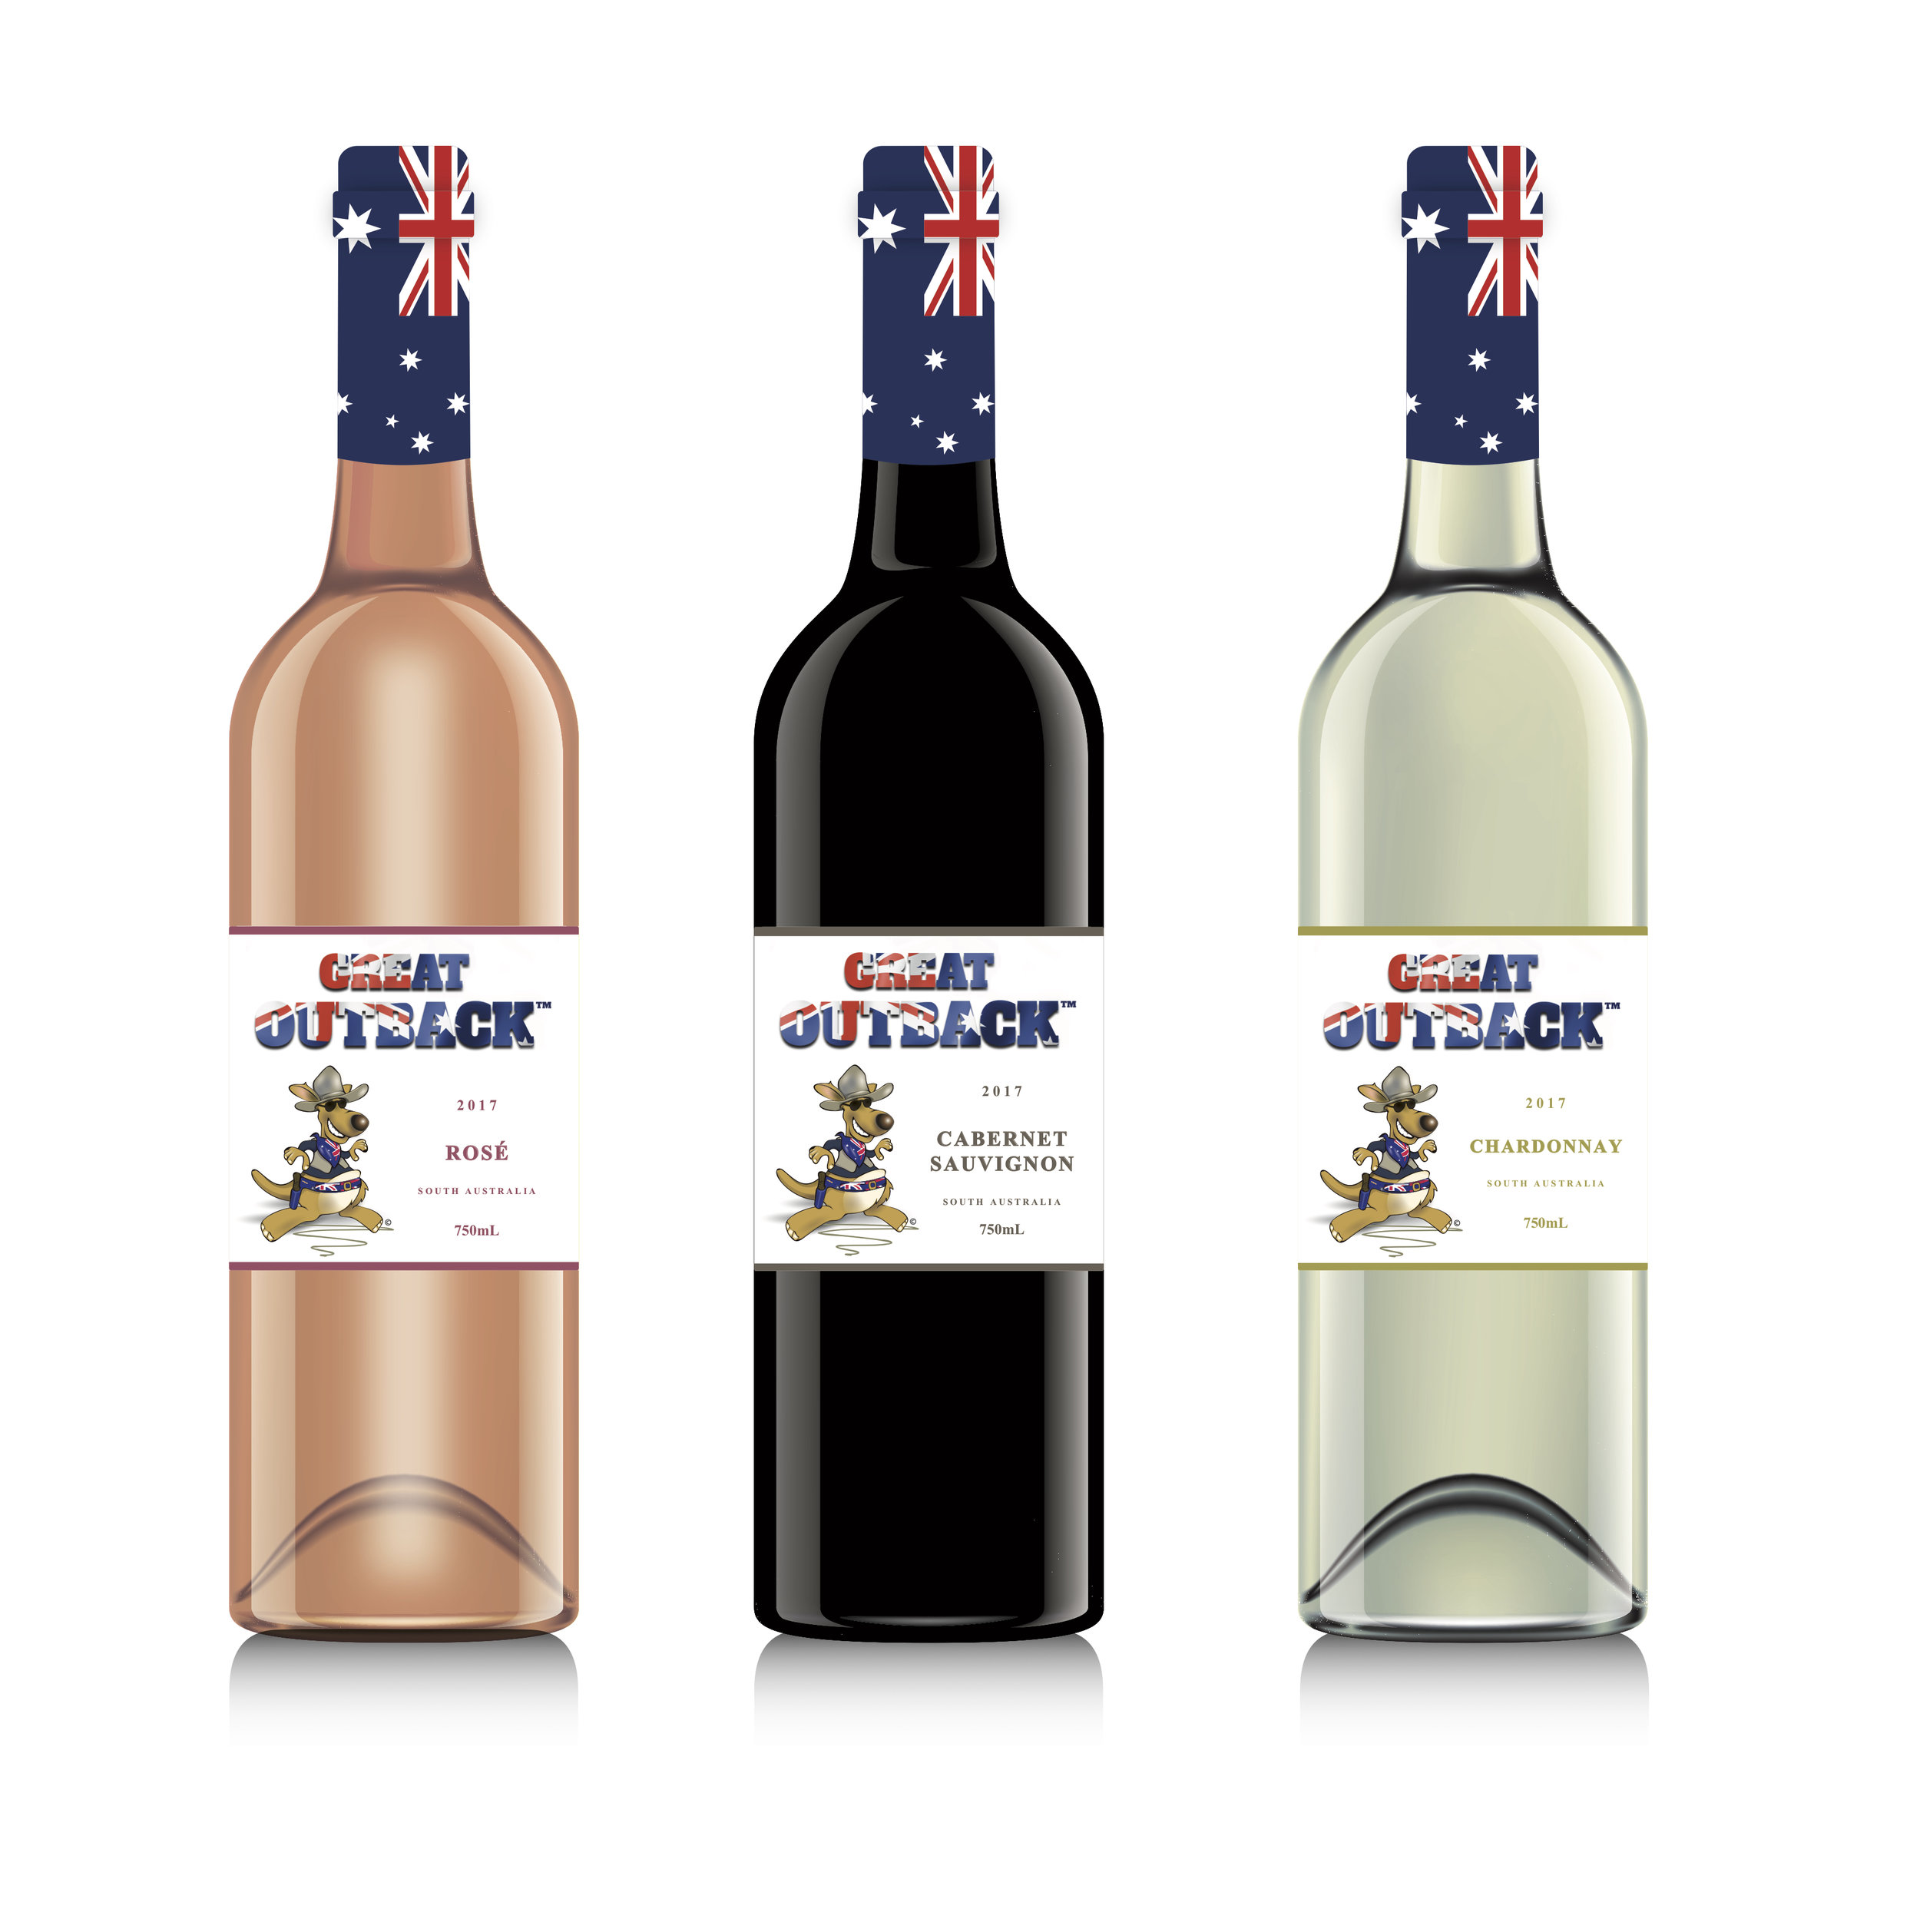 A taste of the Great Outback - The classics Rosé, Cabernet Sauvignon, & Chardonnay in a new look with a great taste!Great Outback wine, brings you something classic in a brand new look, that appeals to consumers all across the world! Made from high quality grapes from Australia!